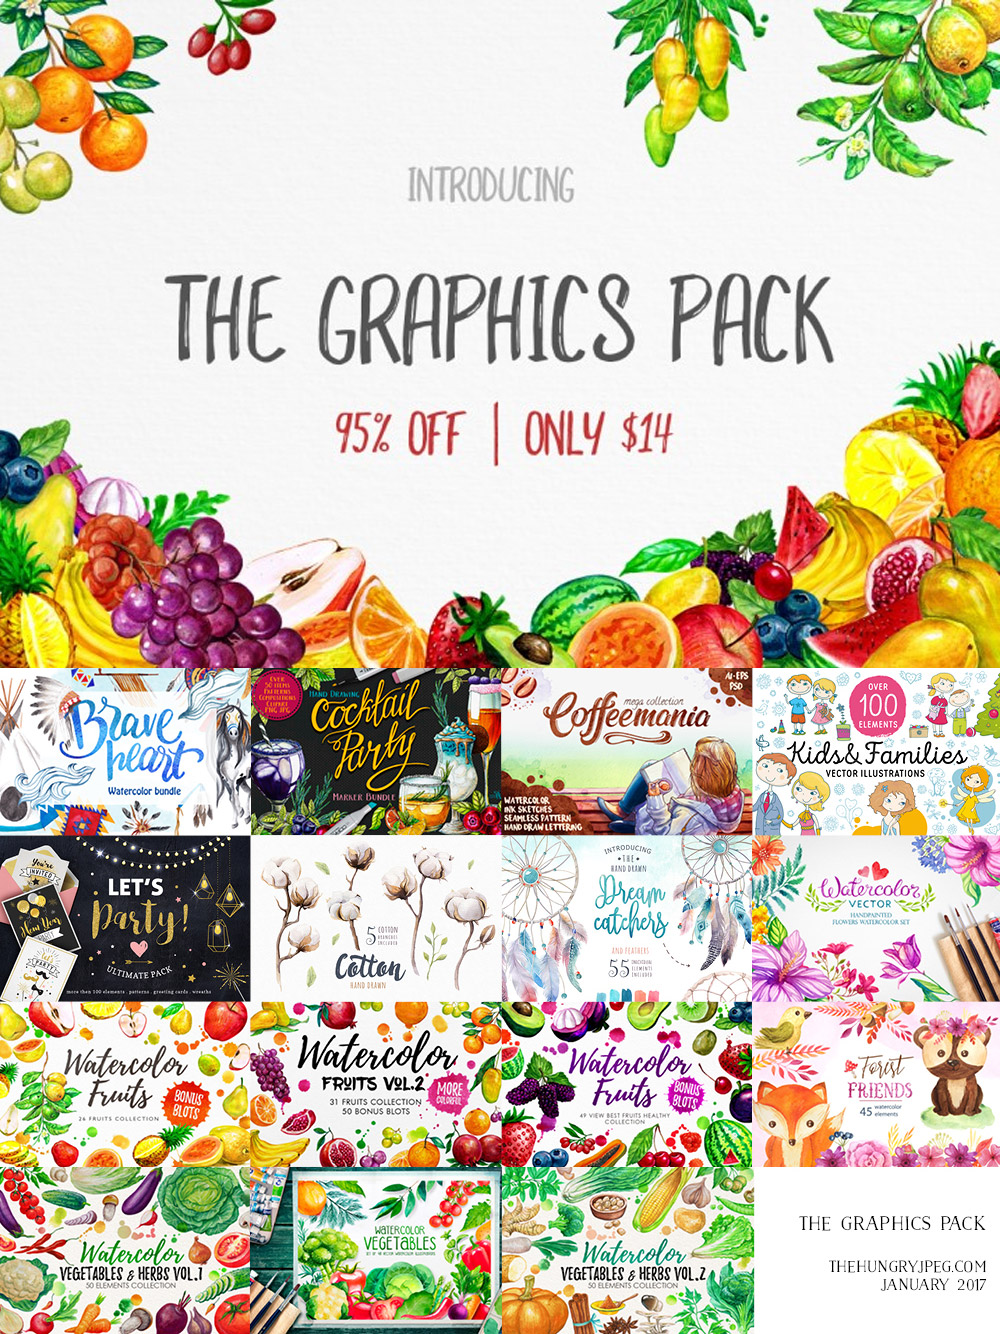 The Graphics Pack